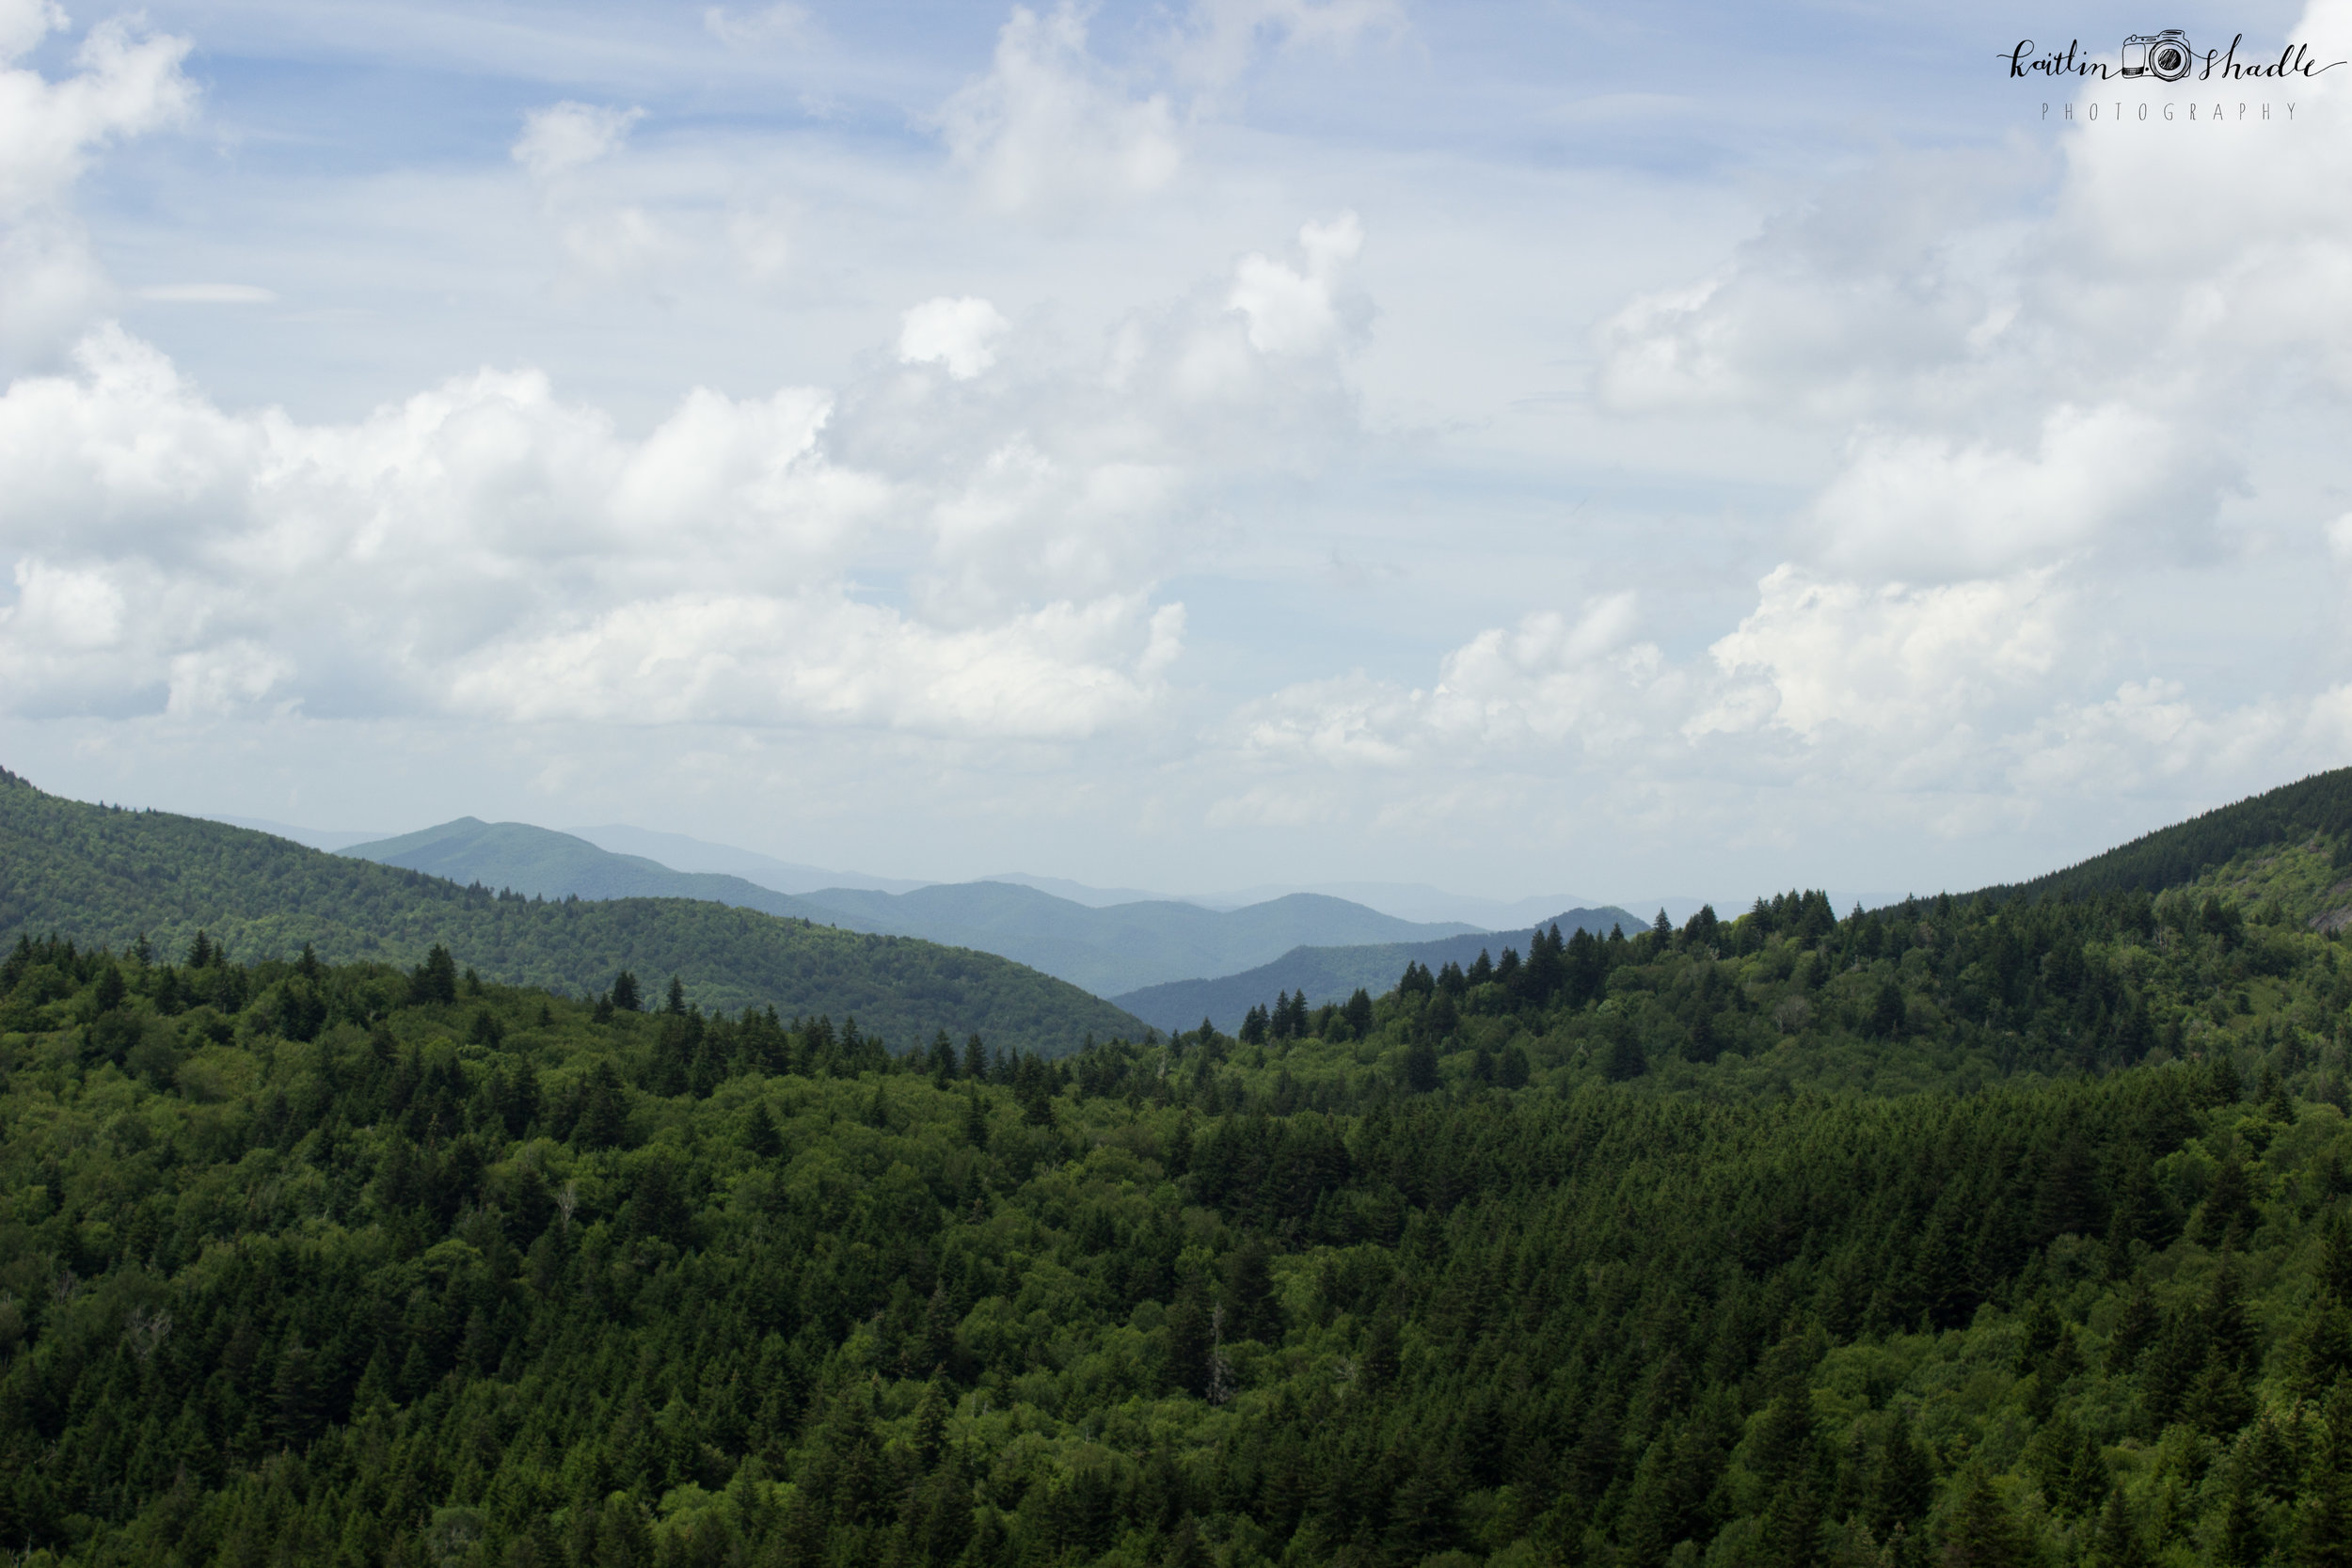 From the Devil's Courthouse Pinnacle